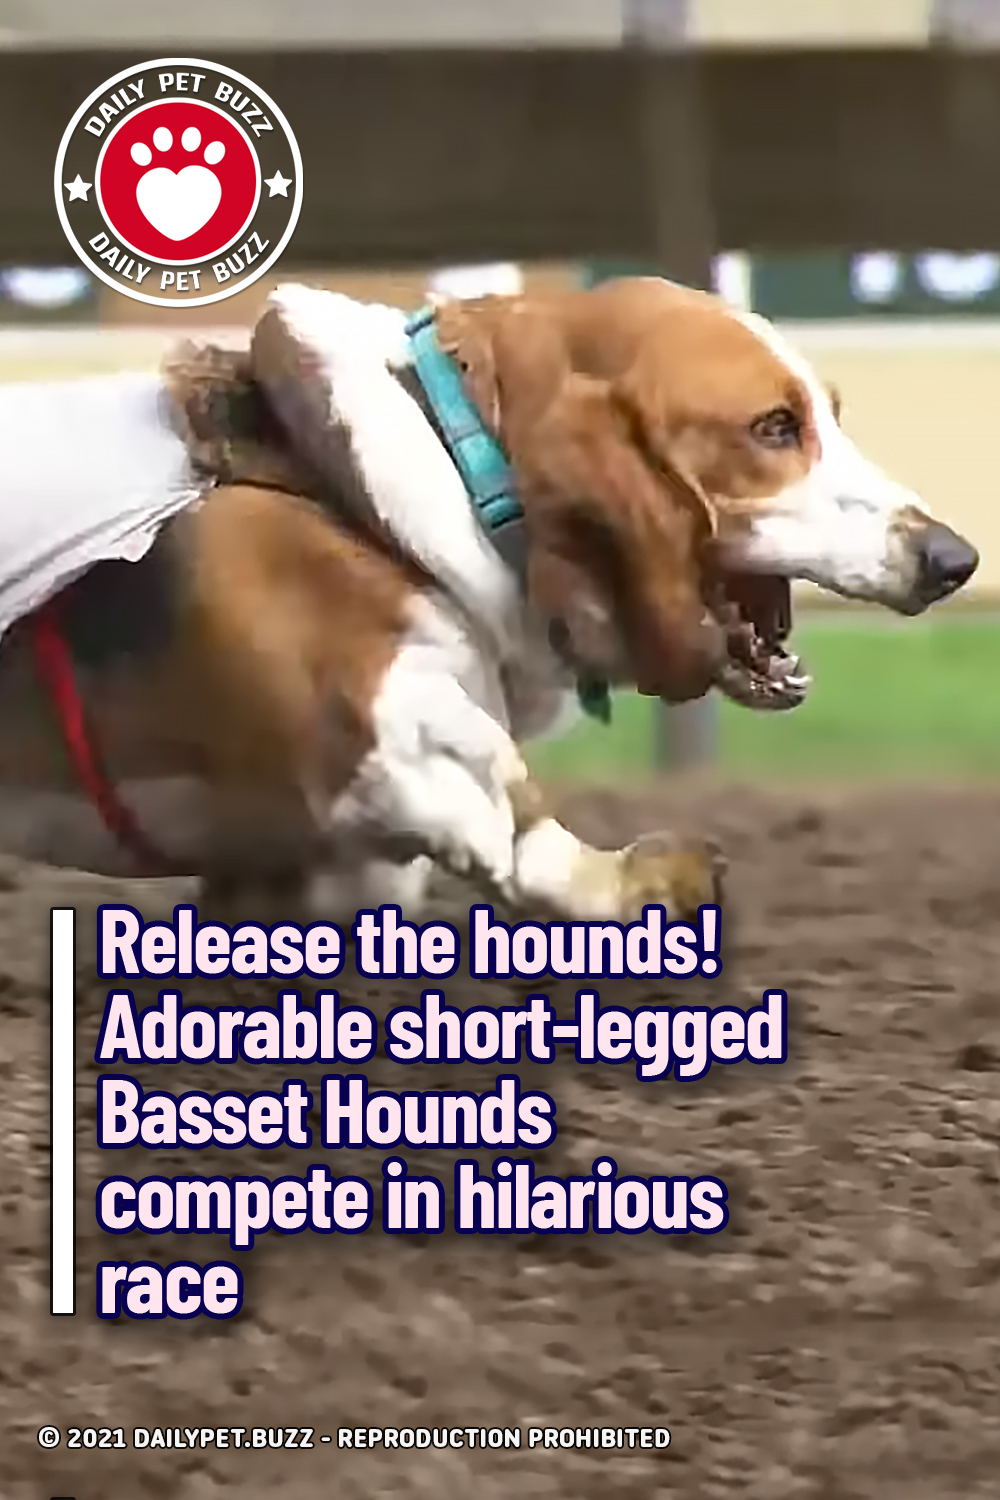 Release the hounds!  Adorable short-legged Basset Hounds compete in hilarious race